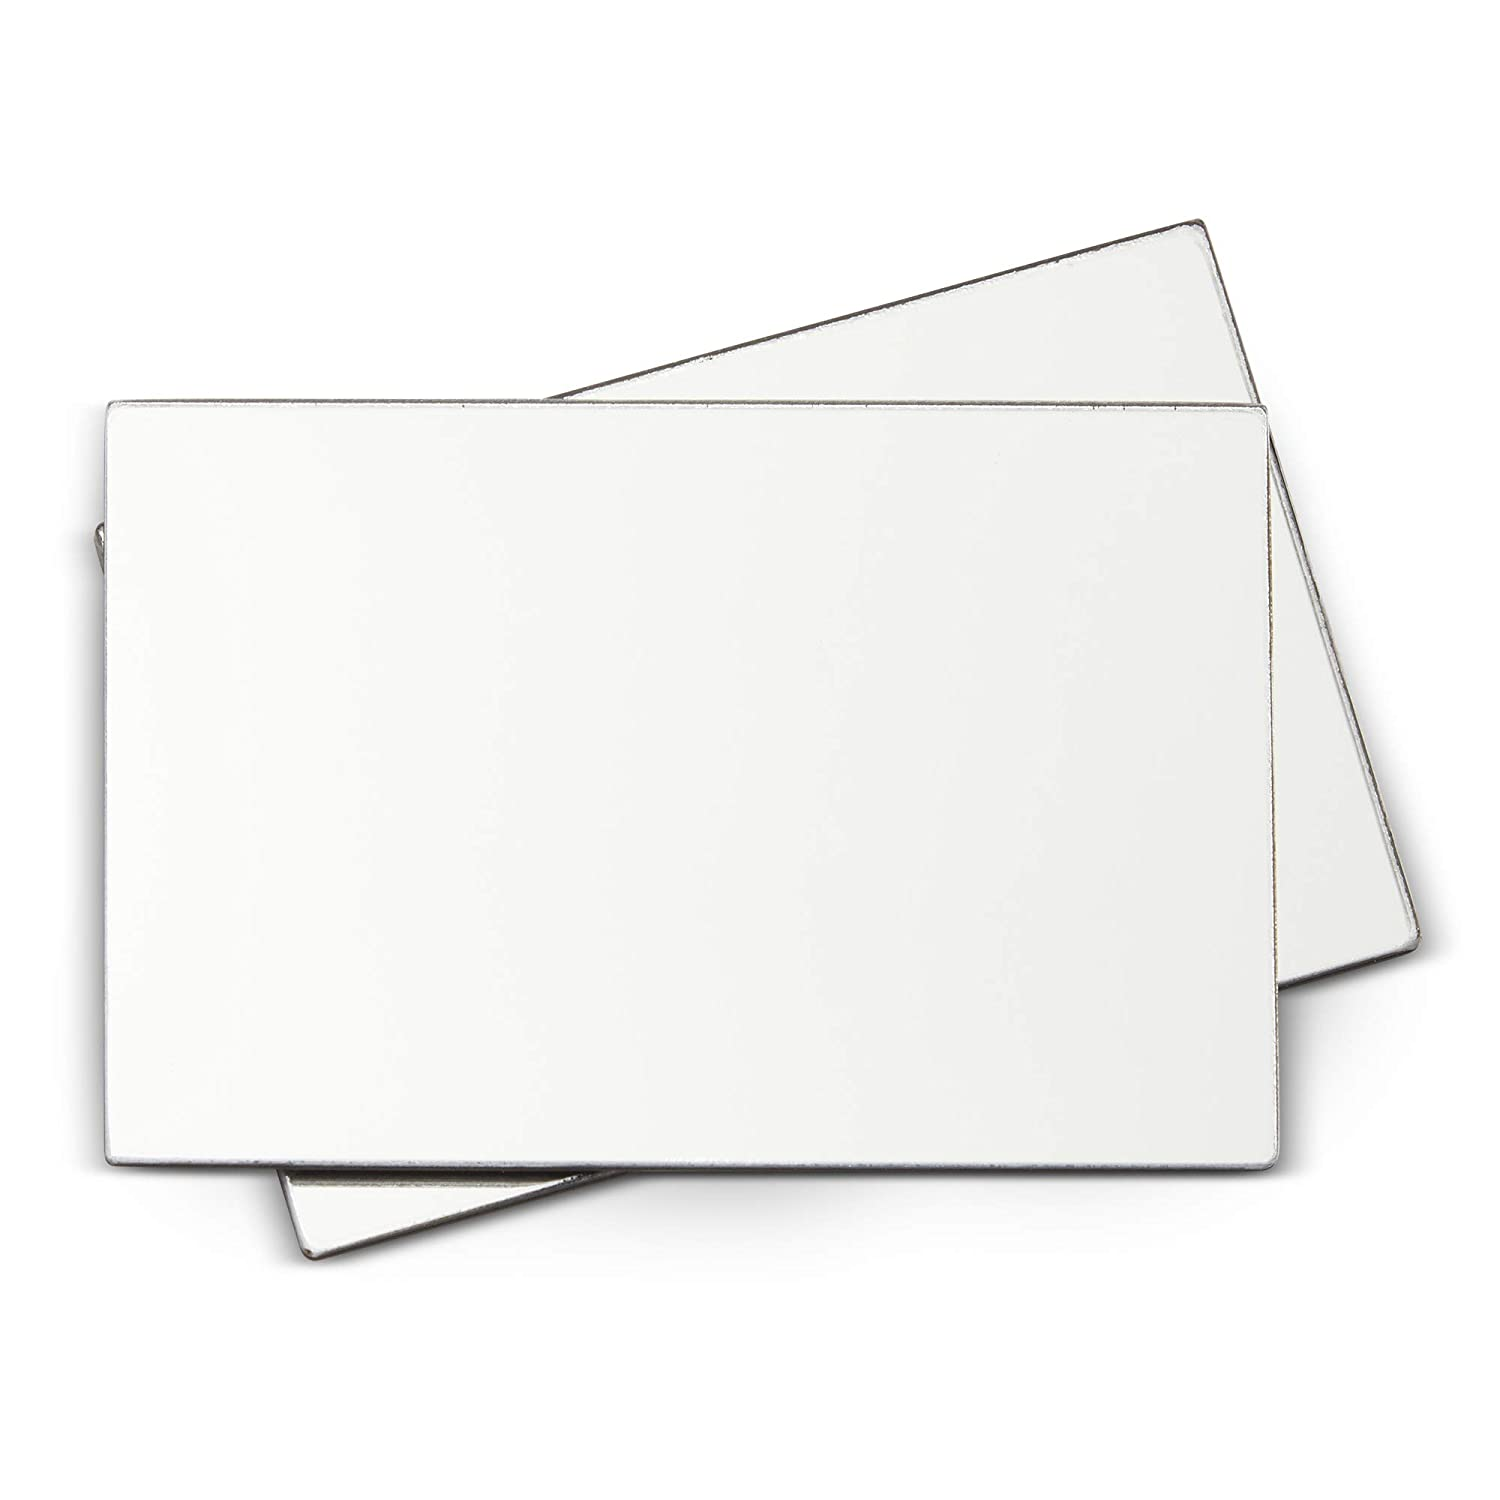 Juvale Magnetic Locker Mirror (2 Pack) 4 x 6 Inches